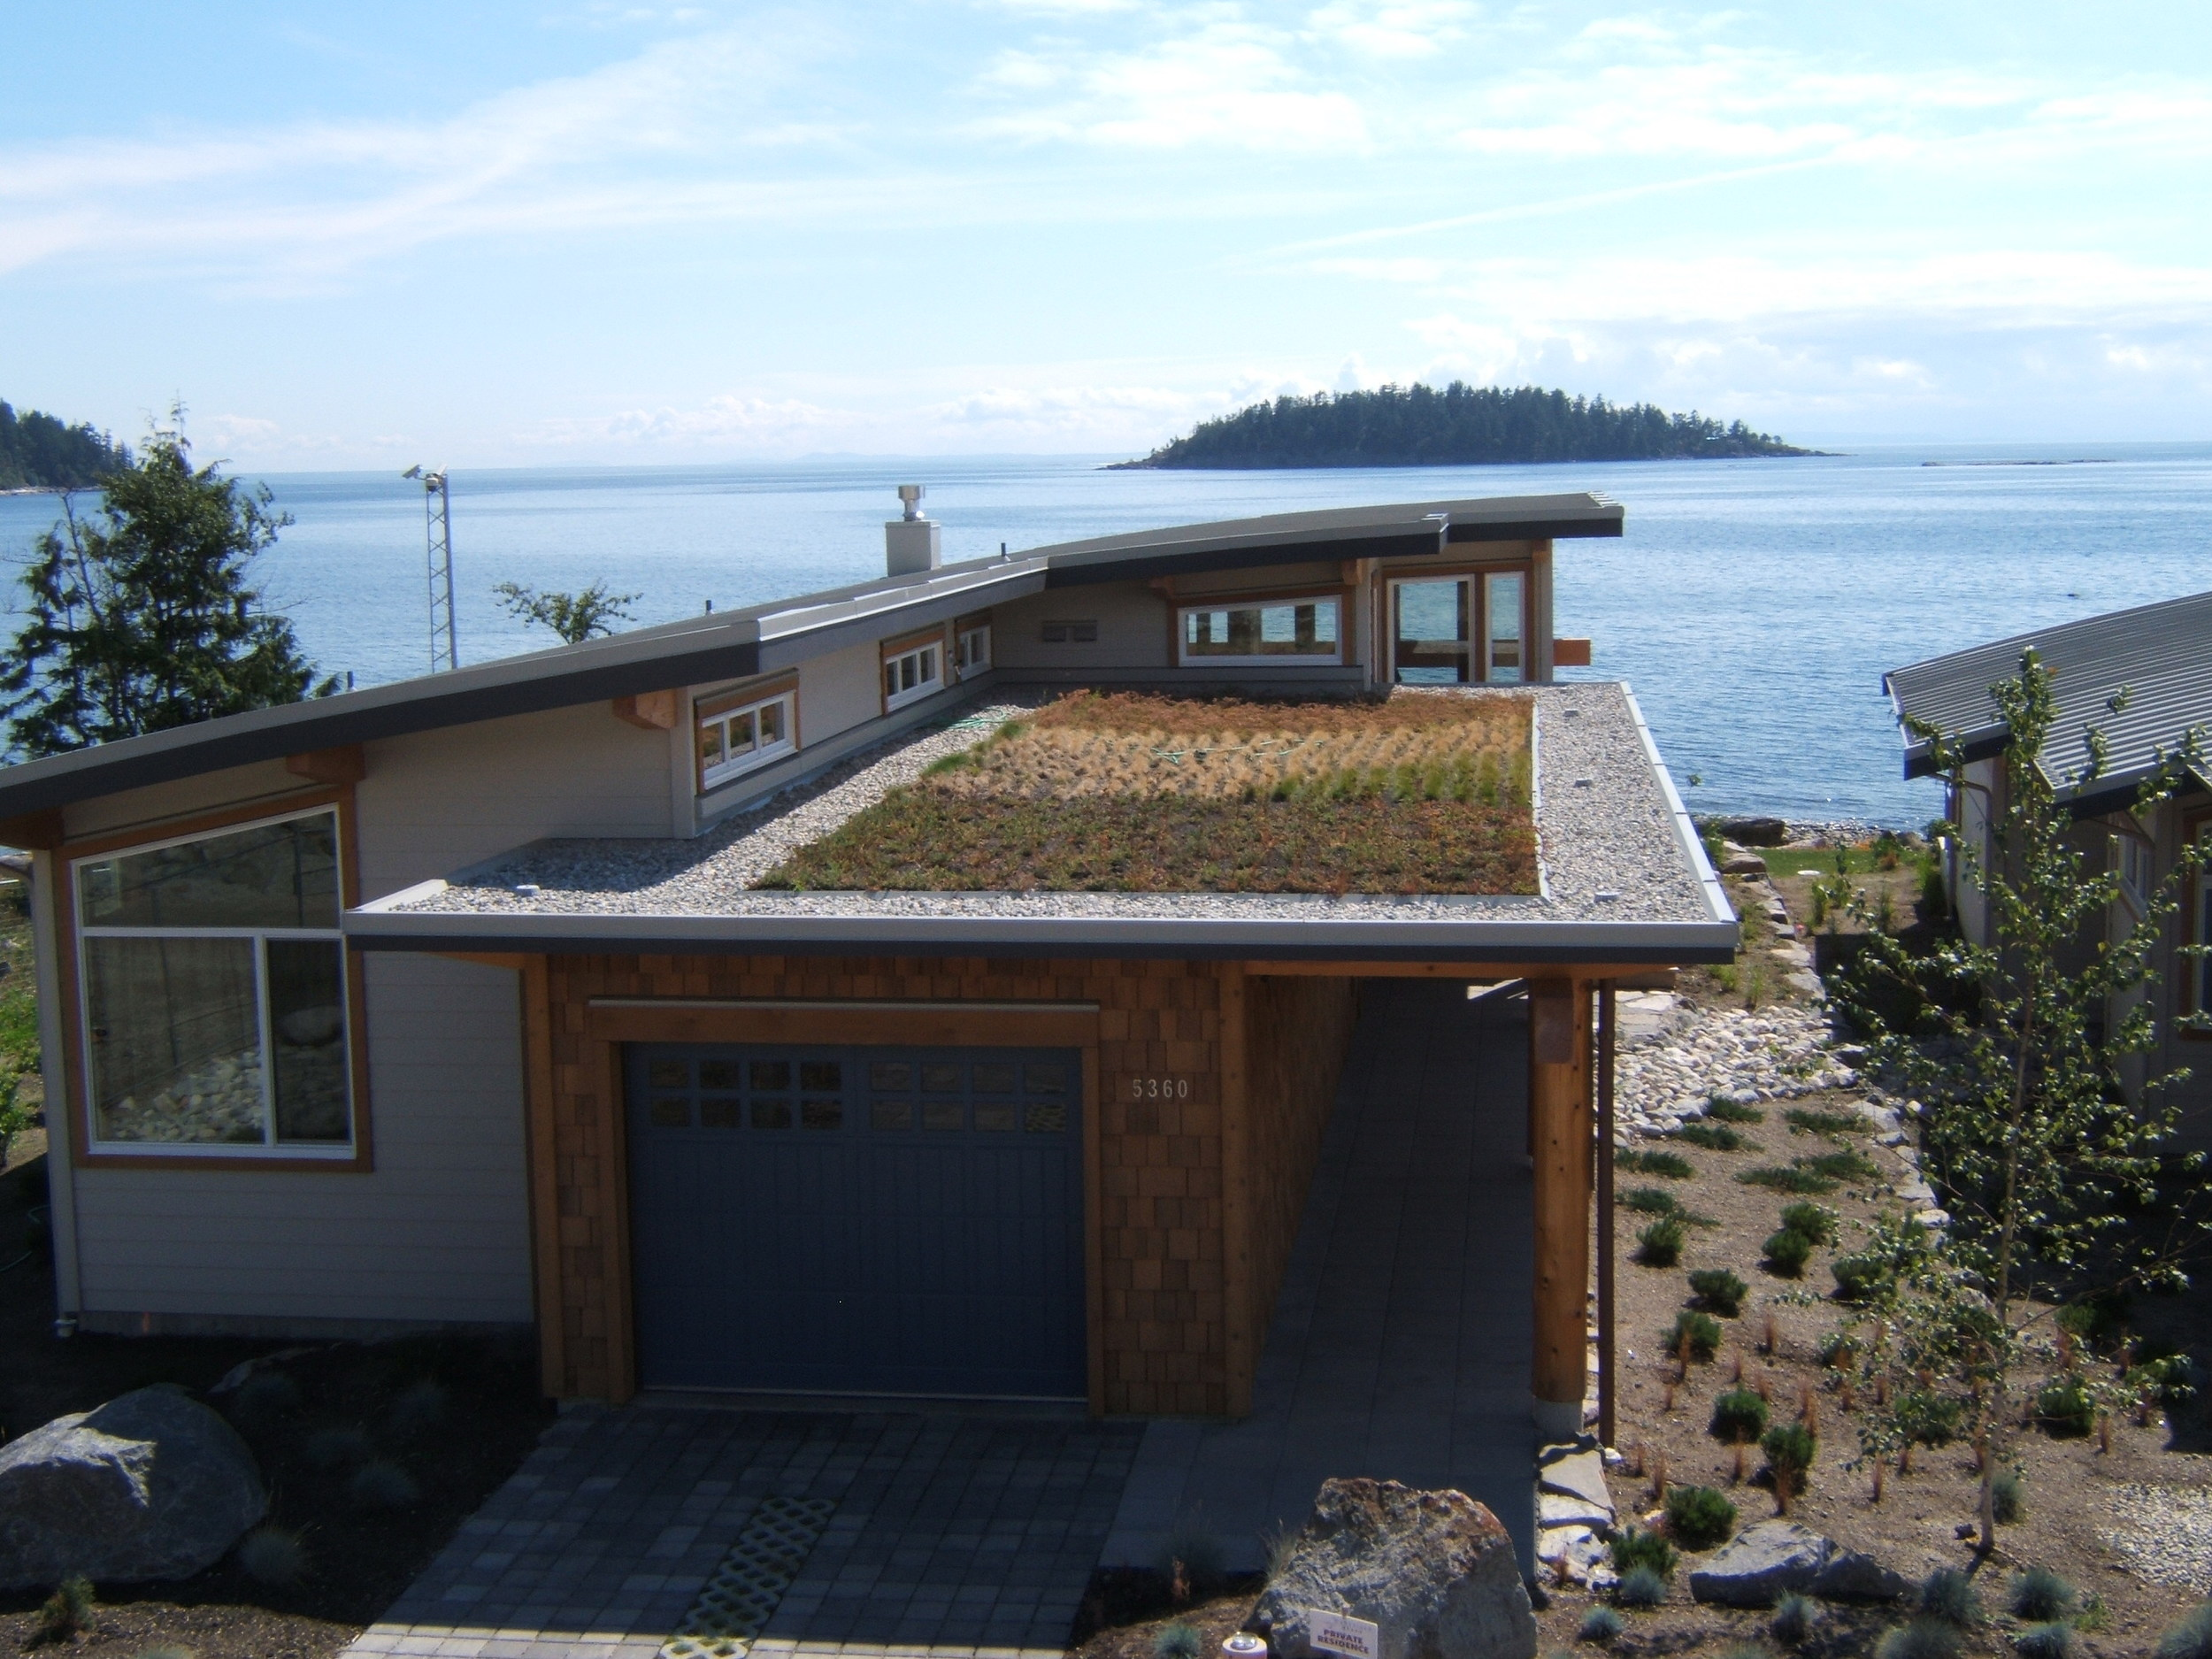 Nelson Roofing Company, Sea Schelt coastal BC - modern style with a incorporated green roof design.